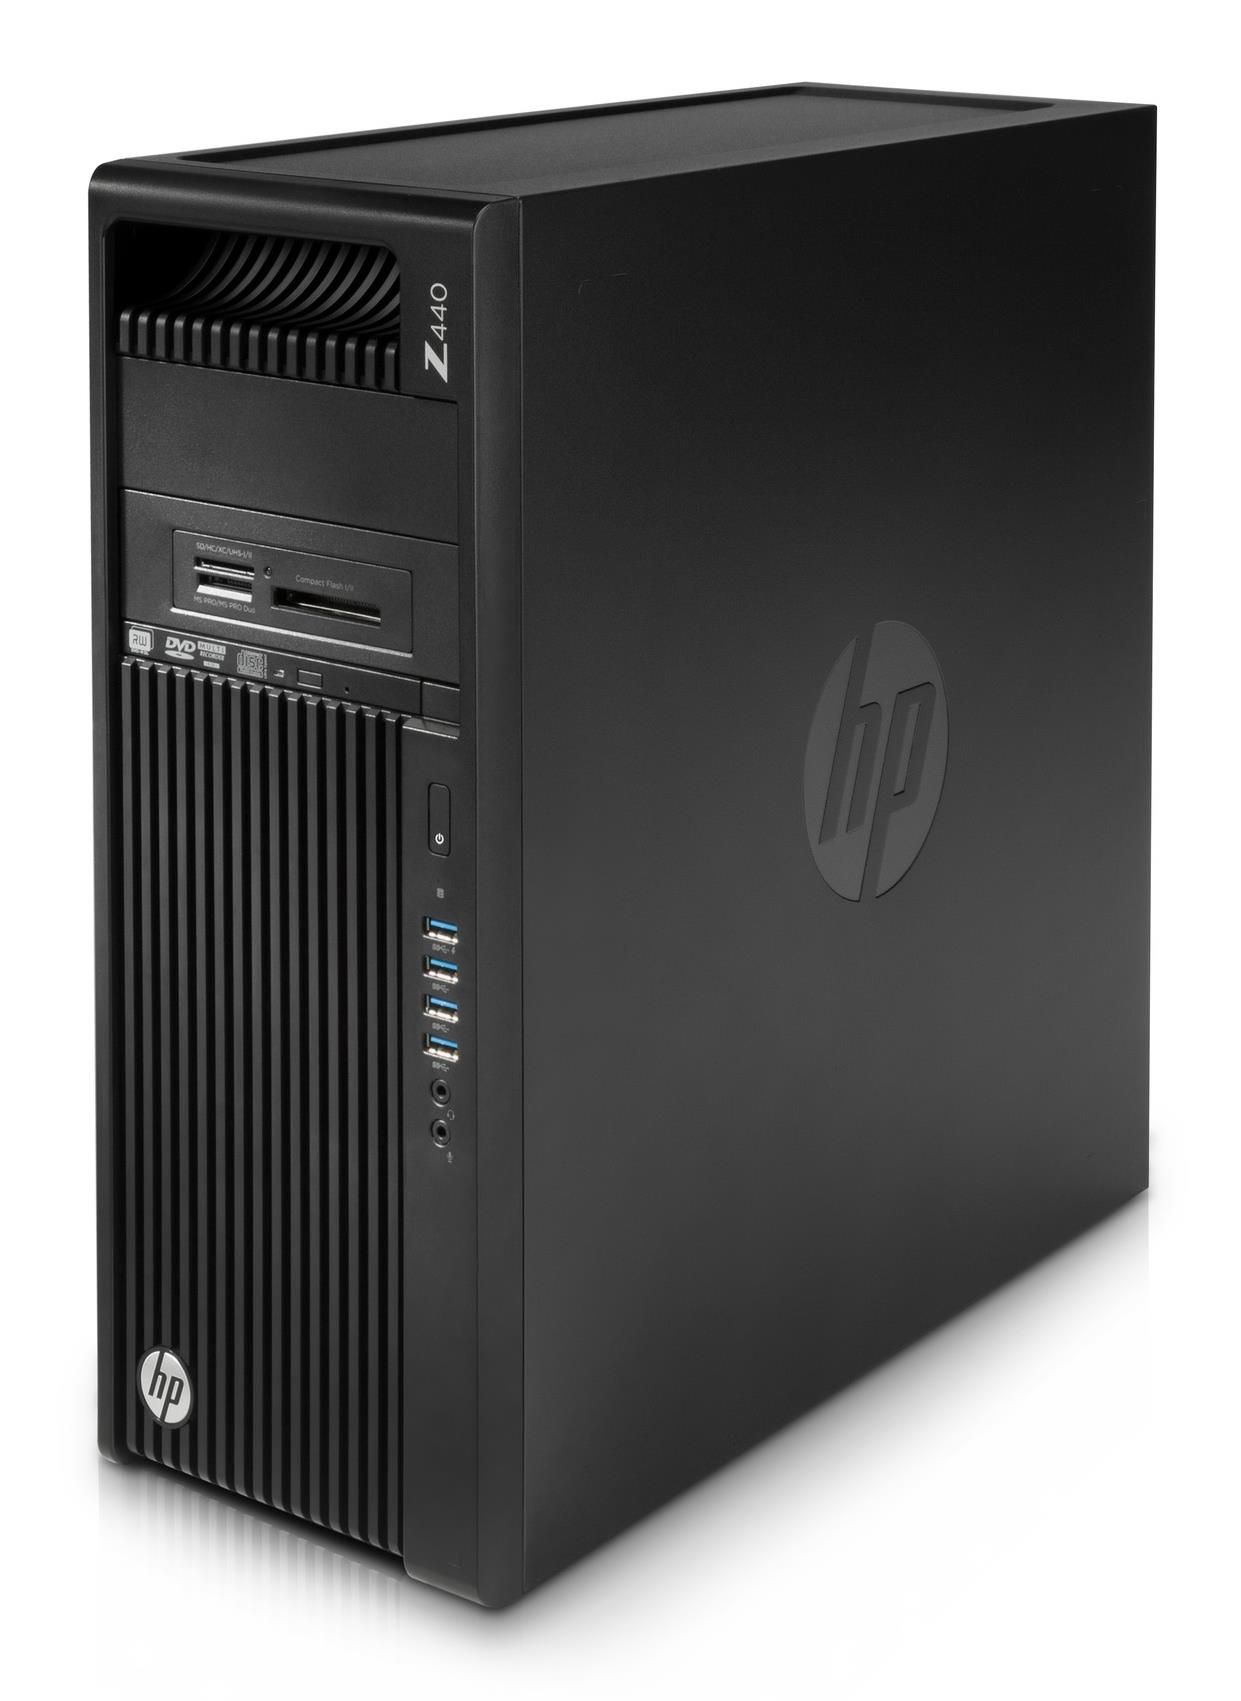 HP Z440 Workstation Xeon E5 (1620 v3) 3.5GHz 16GB 2 x 256GB SSD DVD±RW LAN Windows 7 Pro 64-bit+Media Upgrade to Windows 10 Pro 64-bit